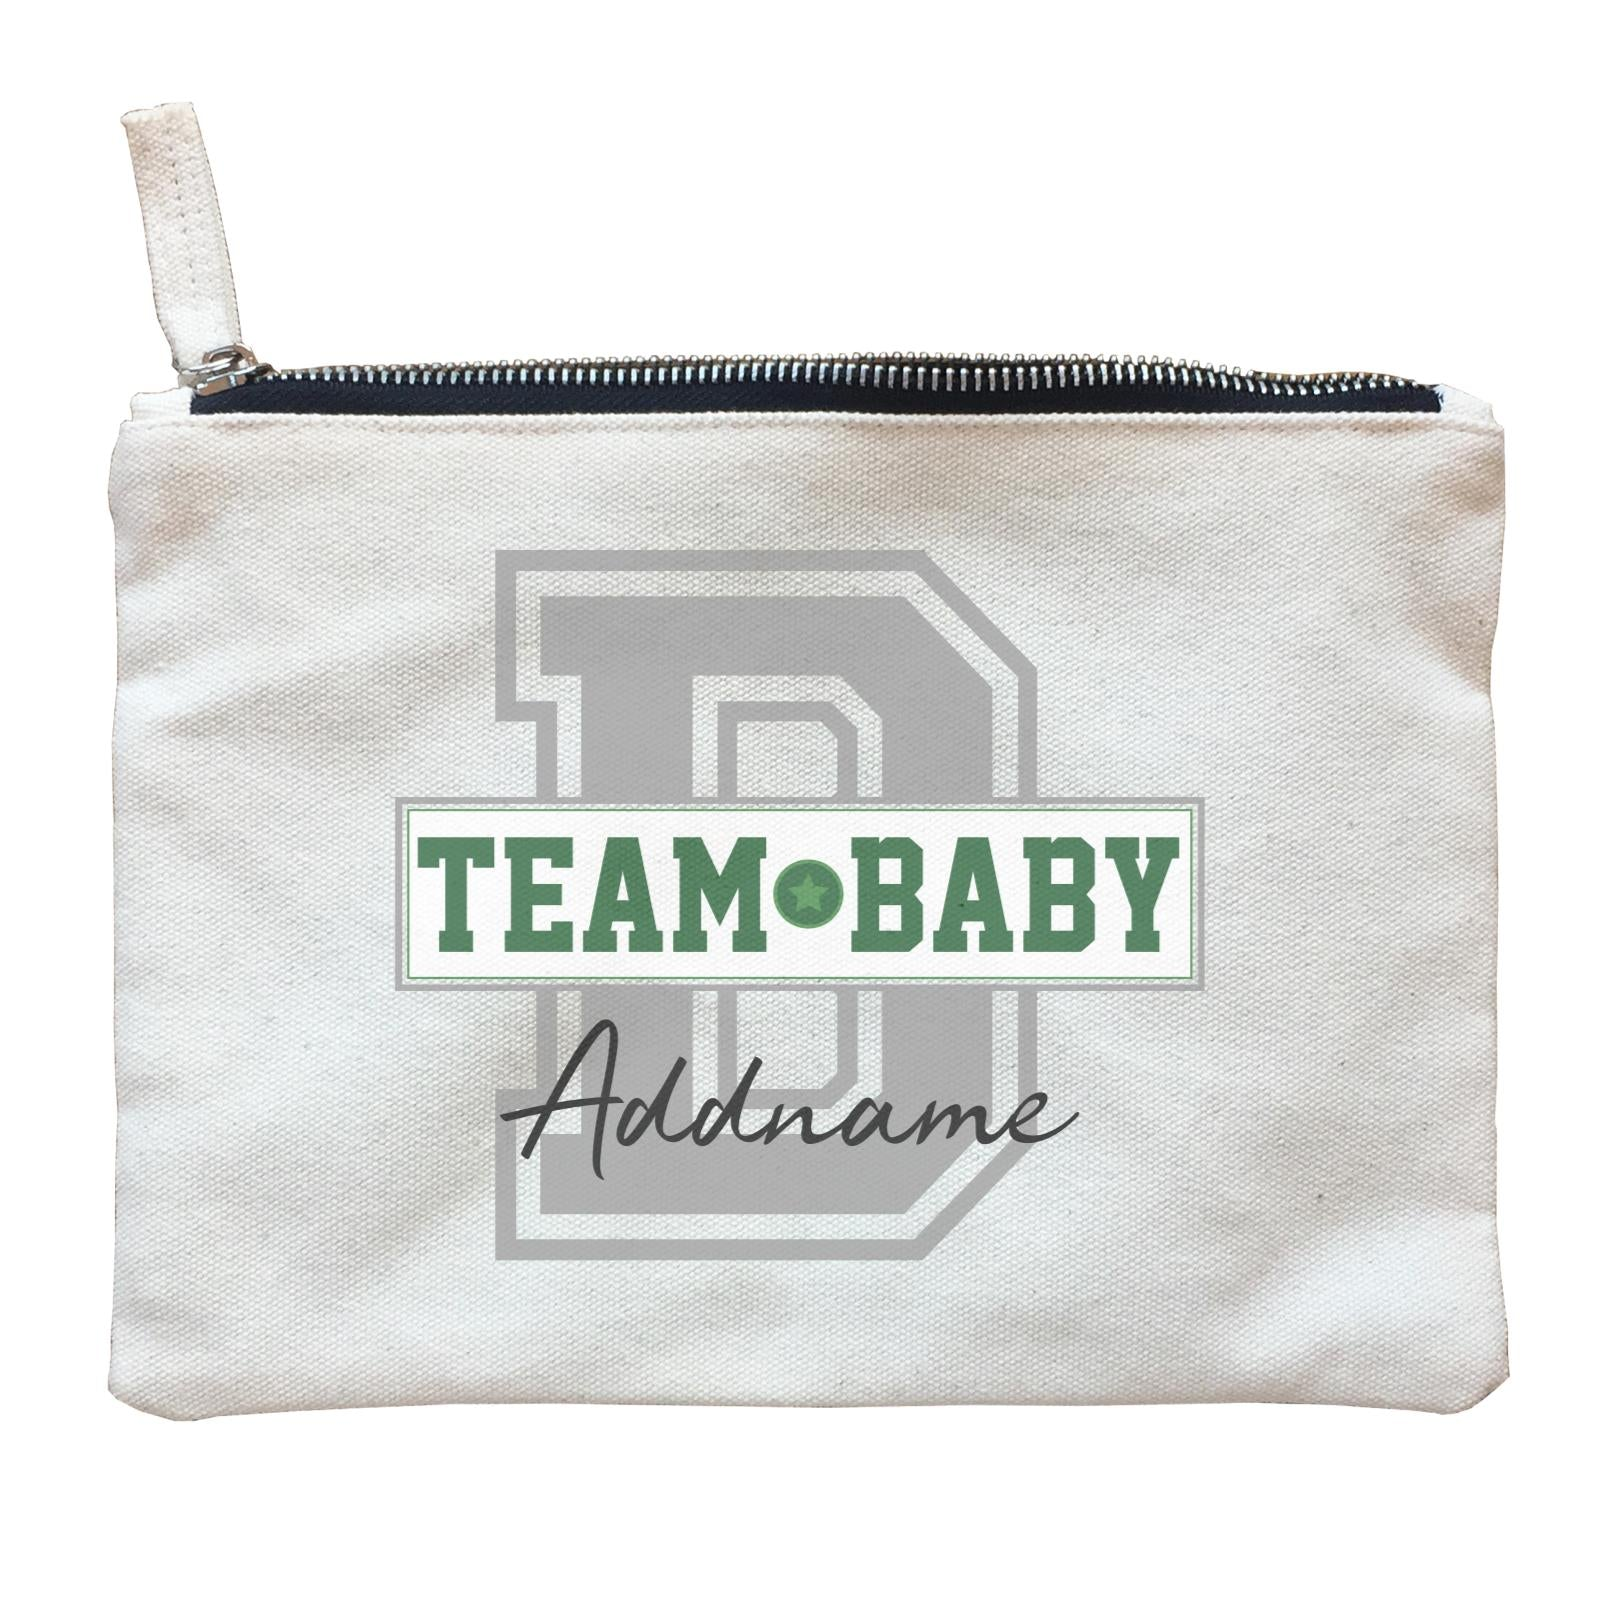 Team Baby Addname Zipper Pouch